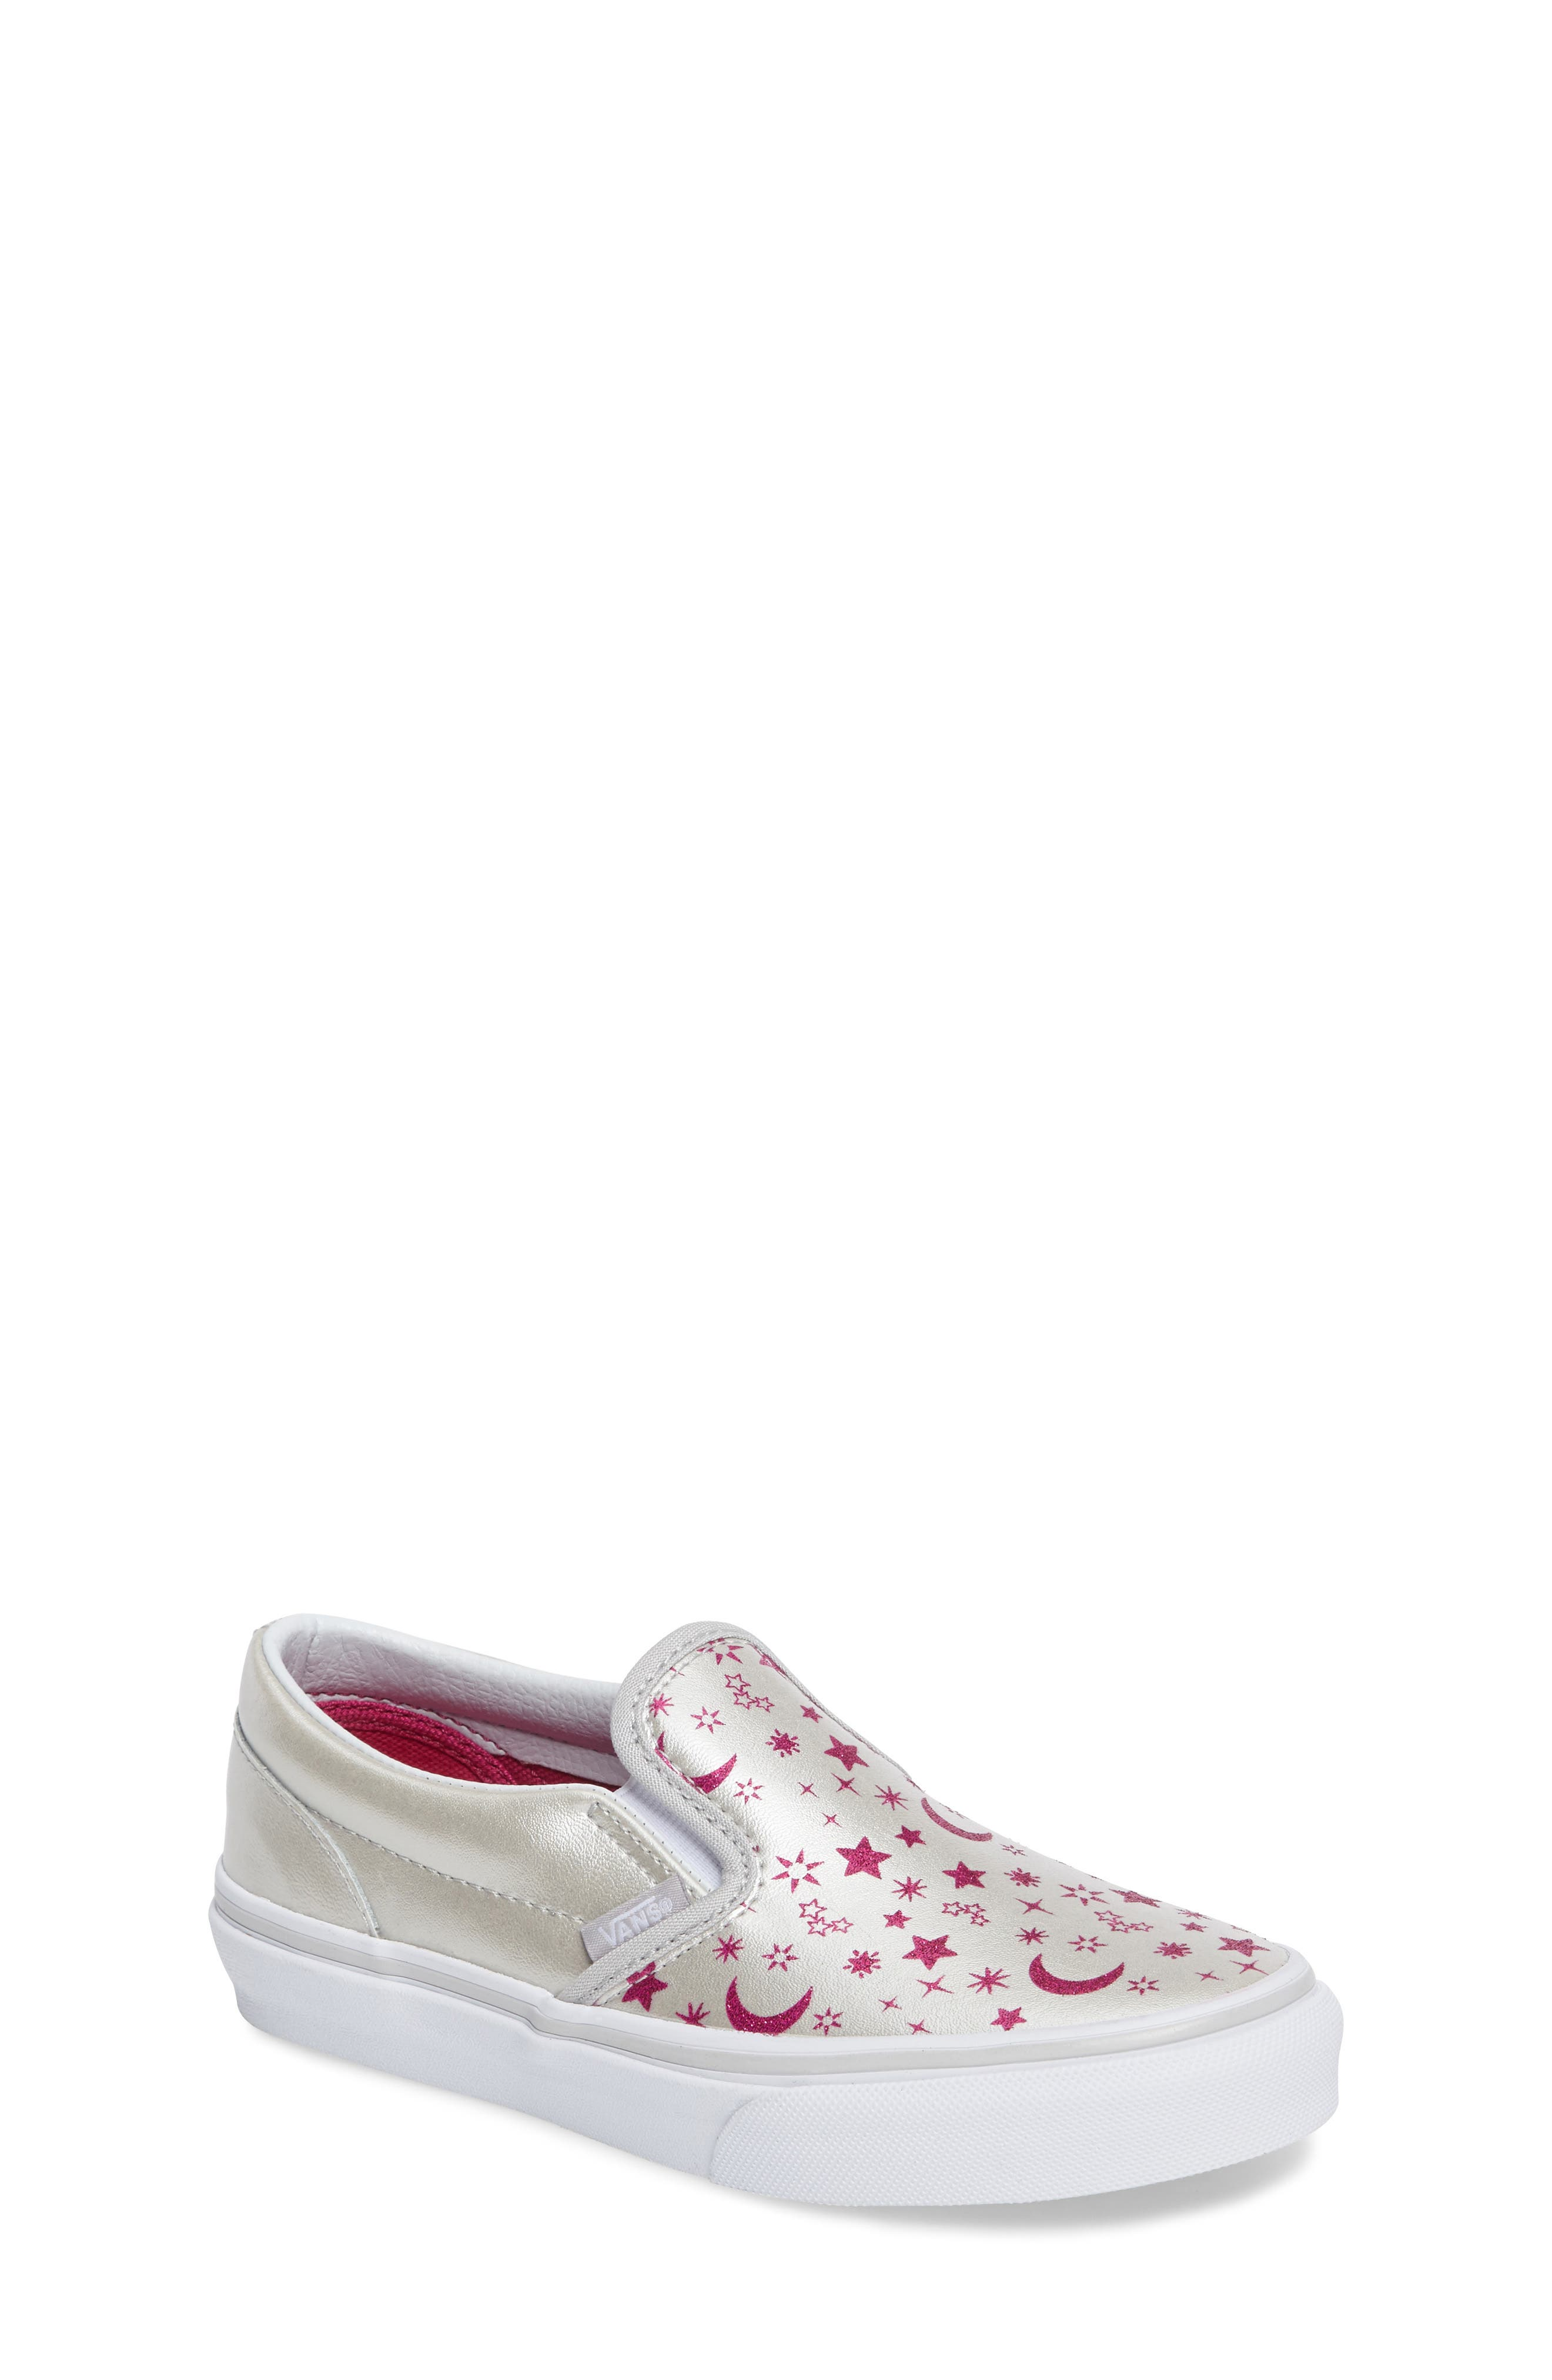 Classic Slip-On Sneaker,                             Main thumbnail 1, color,                             Star Glitter Micro Chip